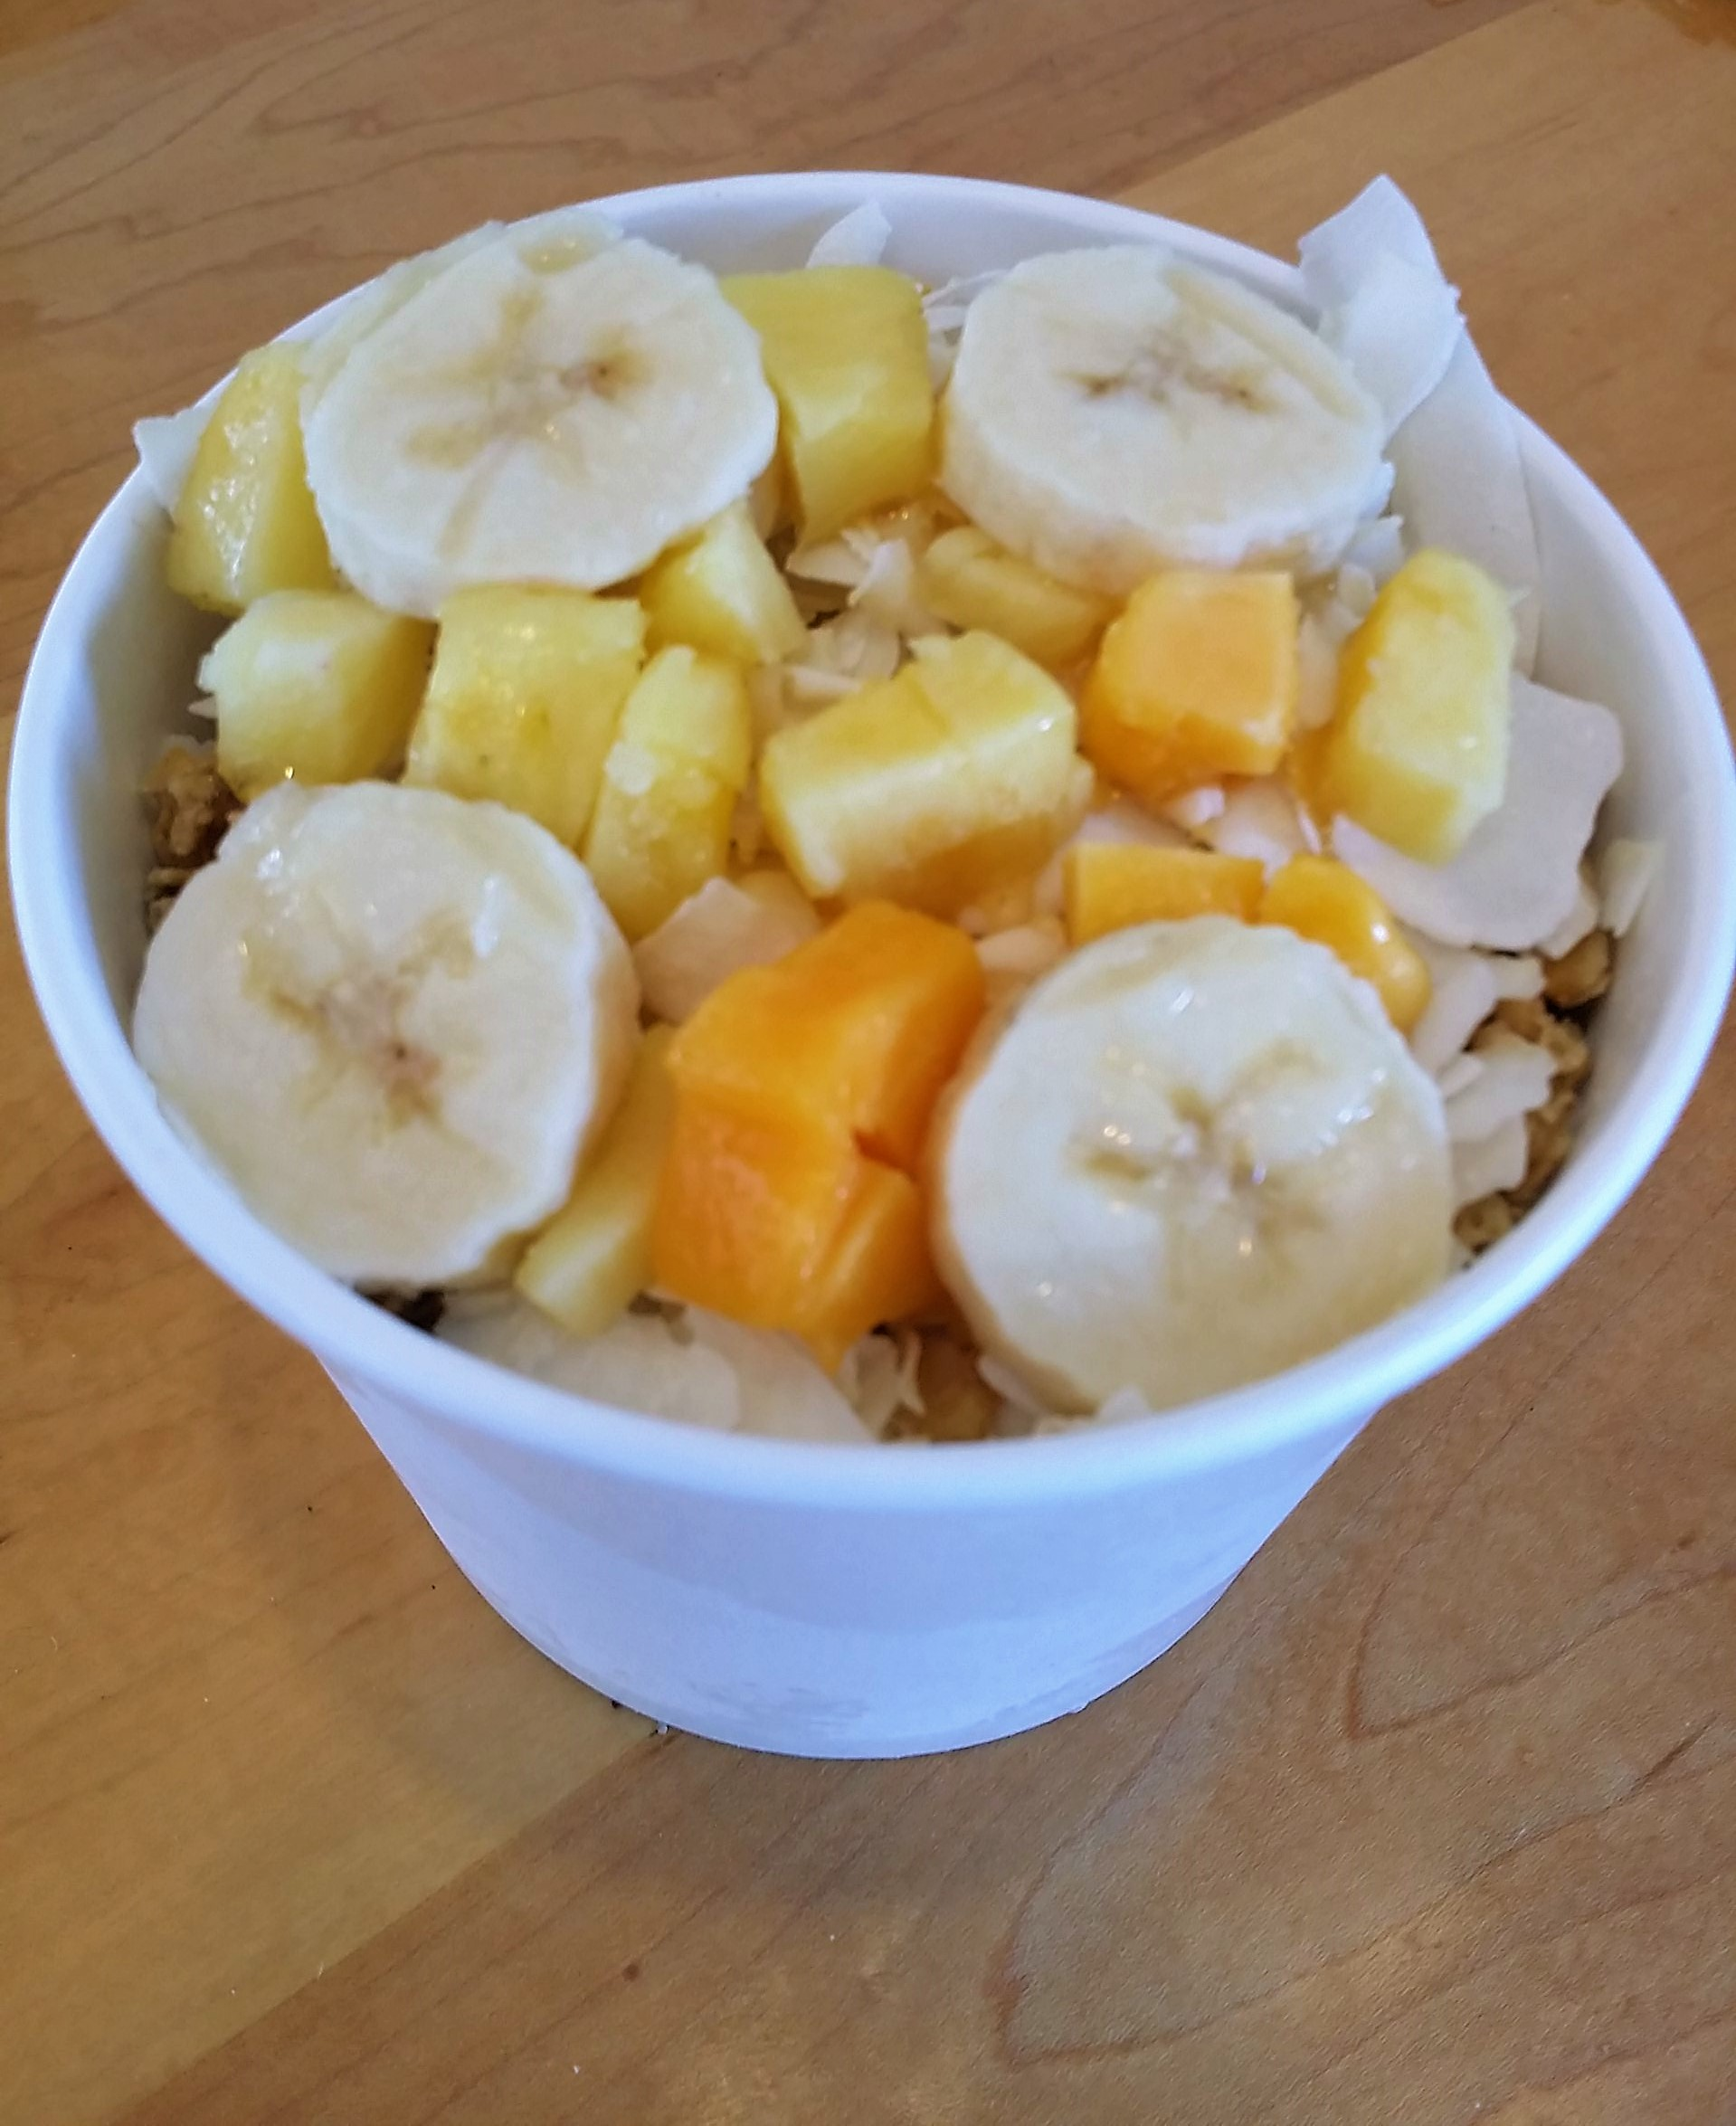 Tropical Acai Bowl from Genuine Fresche